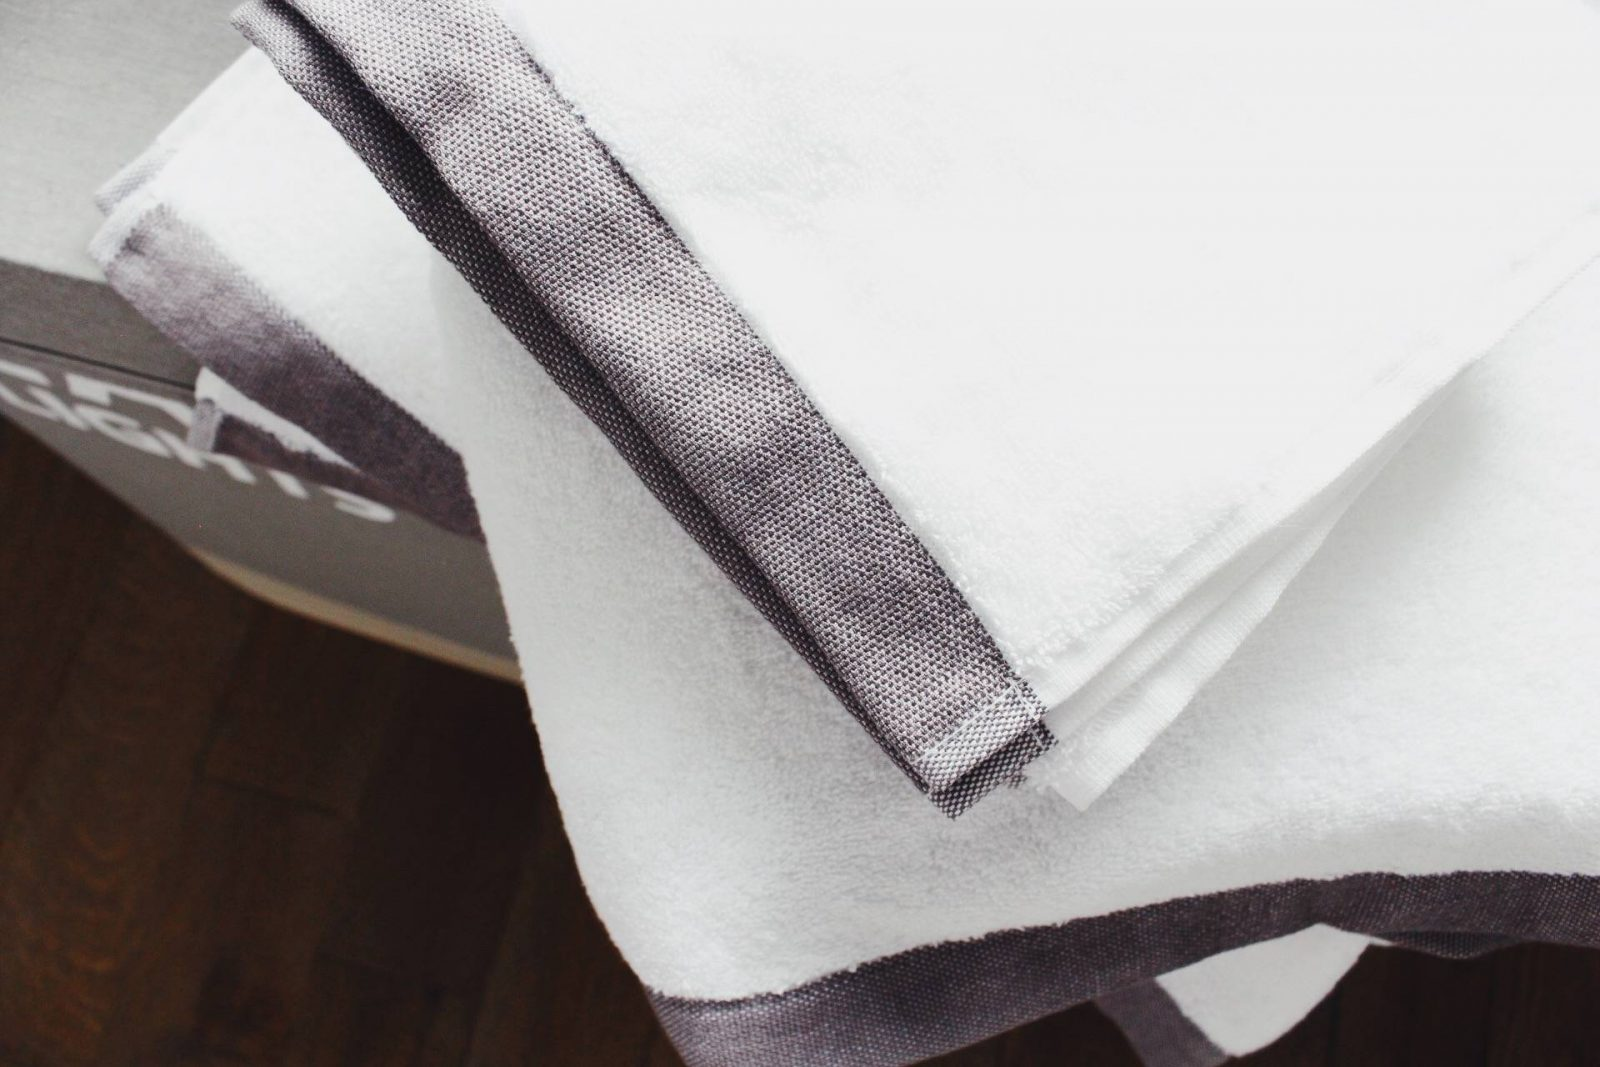 The White Company, Bathroom, Sale, Interiors, Home Design, House Renovation, Towels, White Towels, Fluffy Towels